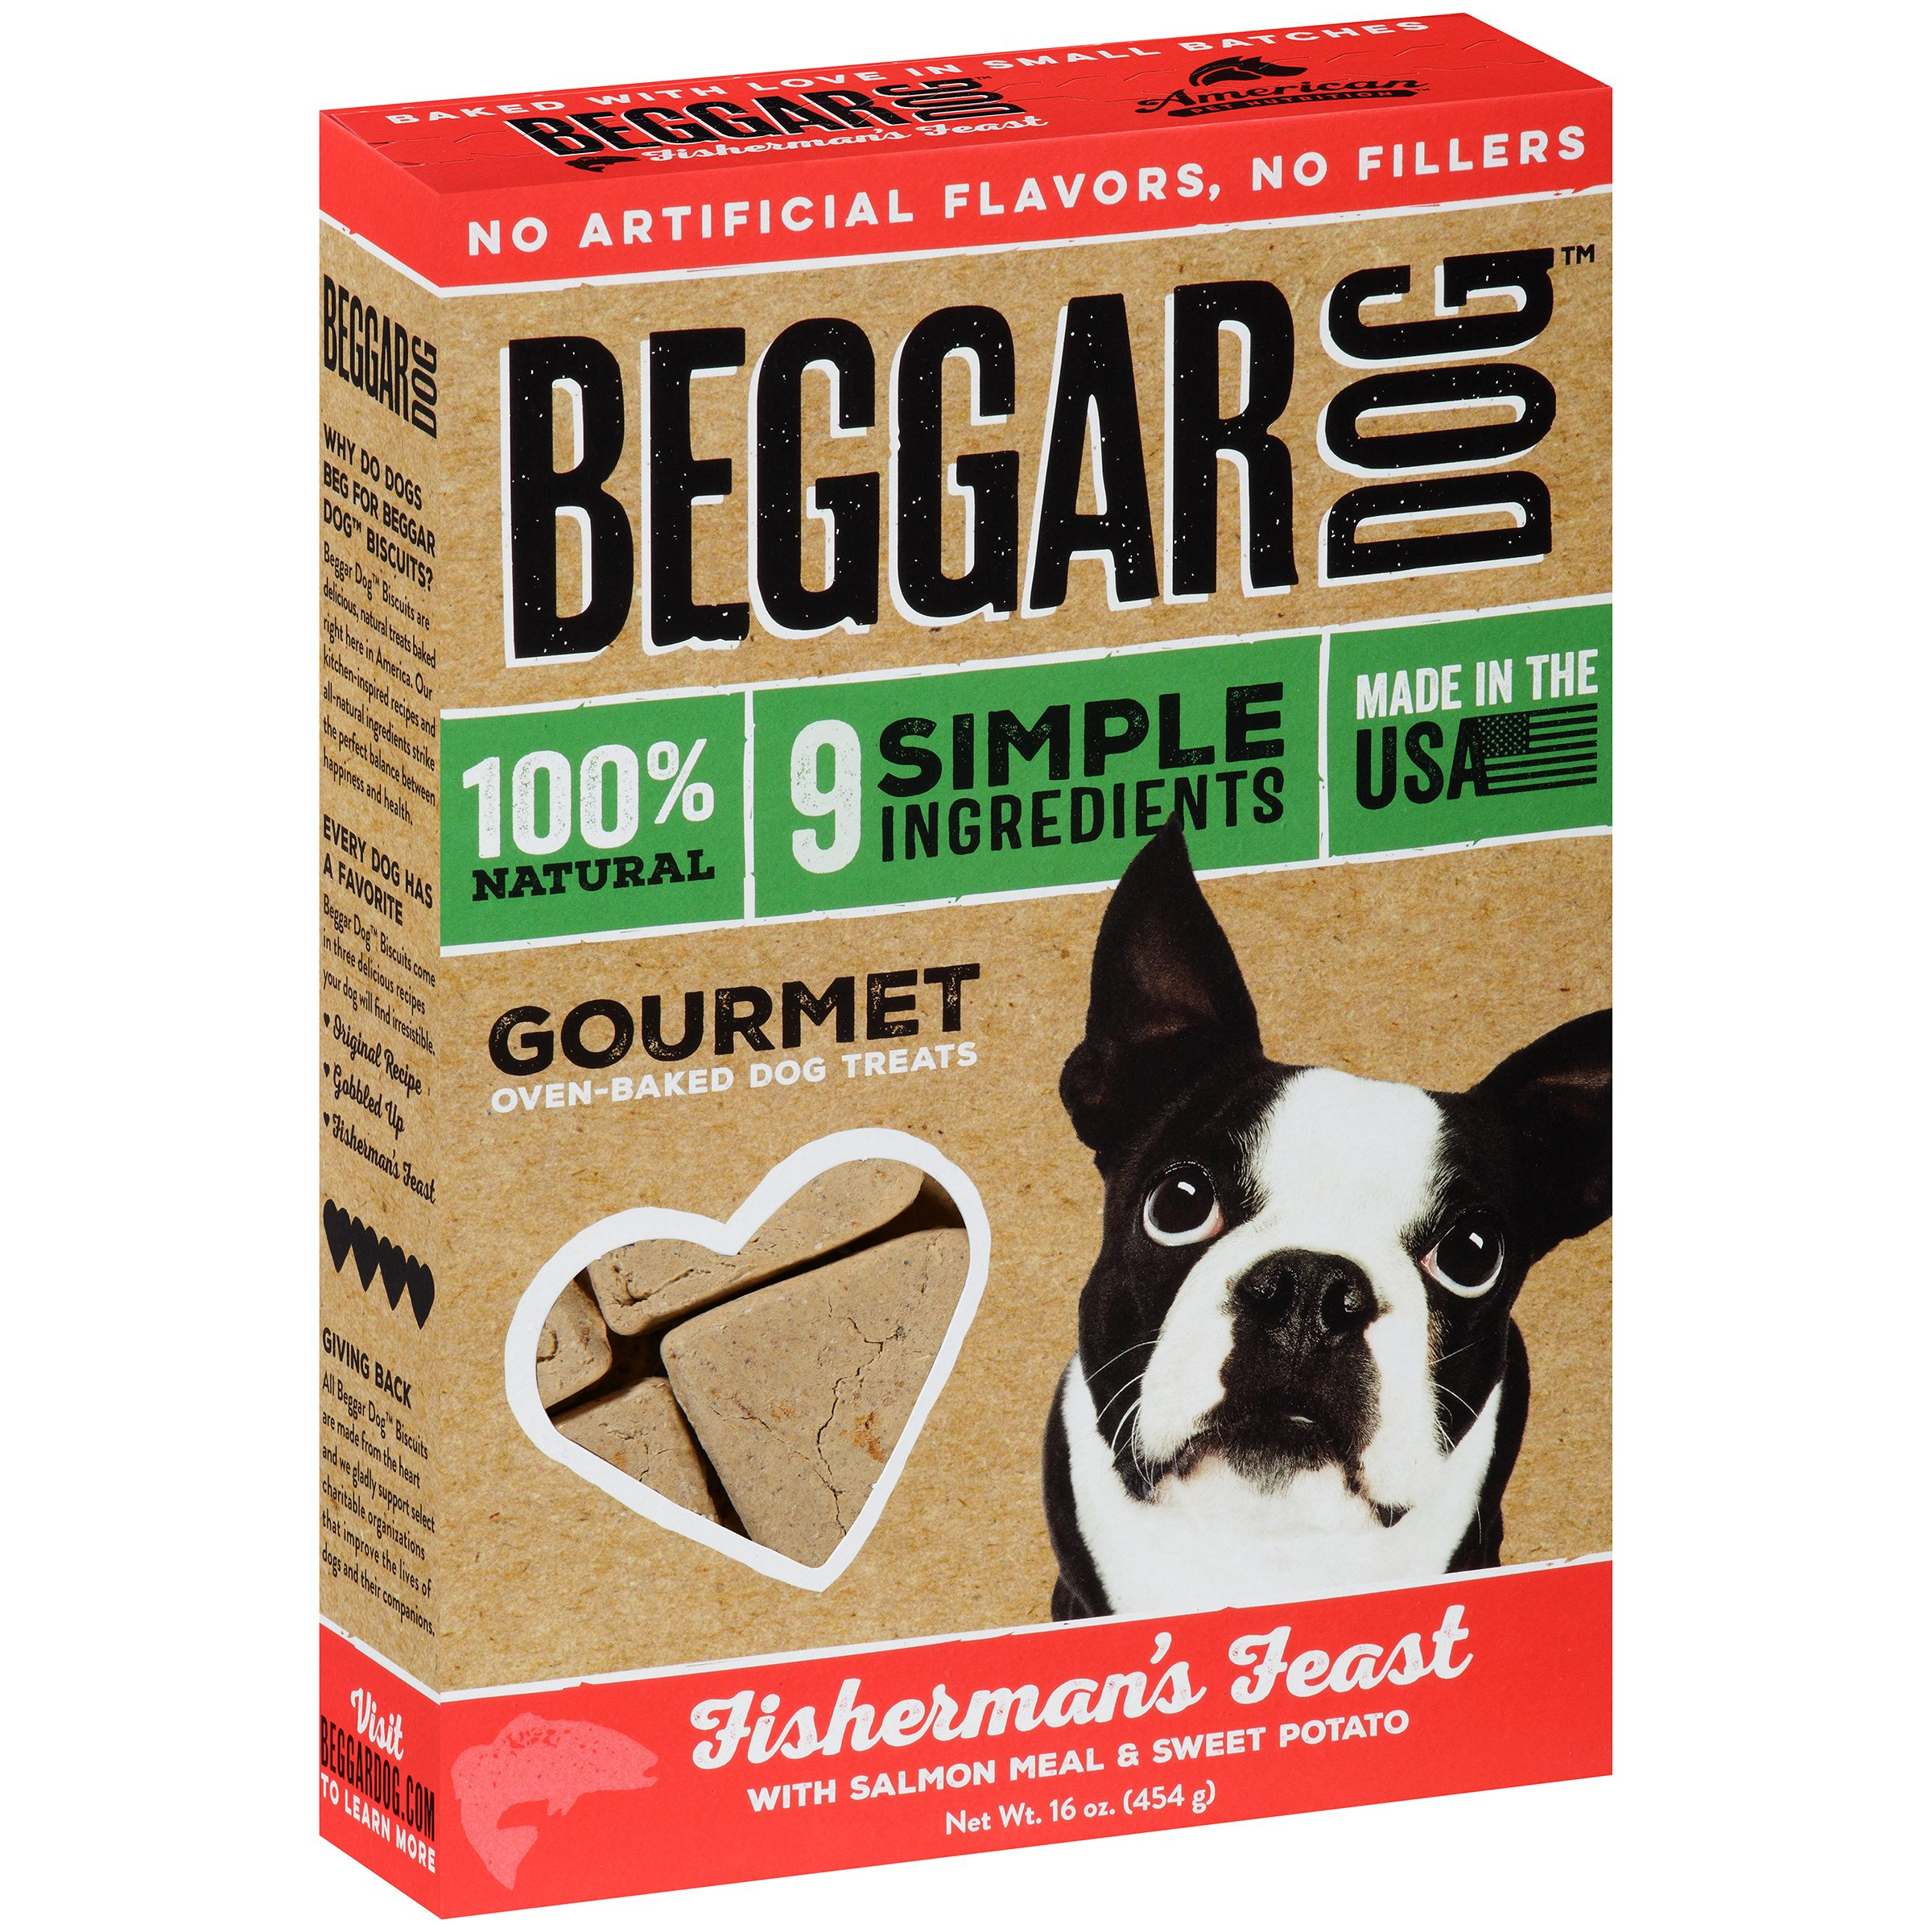 "Beggar Dog Fisherman's Feast Gourmet Oven-Baked Dog Treats 16 oz. Box by American Pet Nutritionâ""¢"